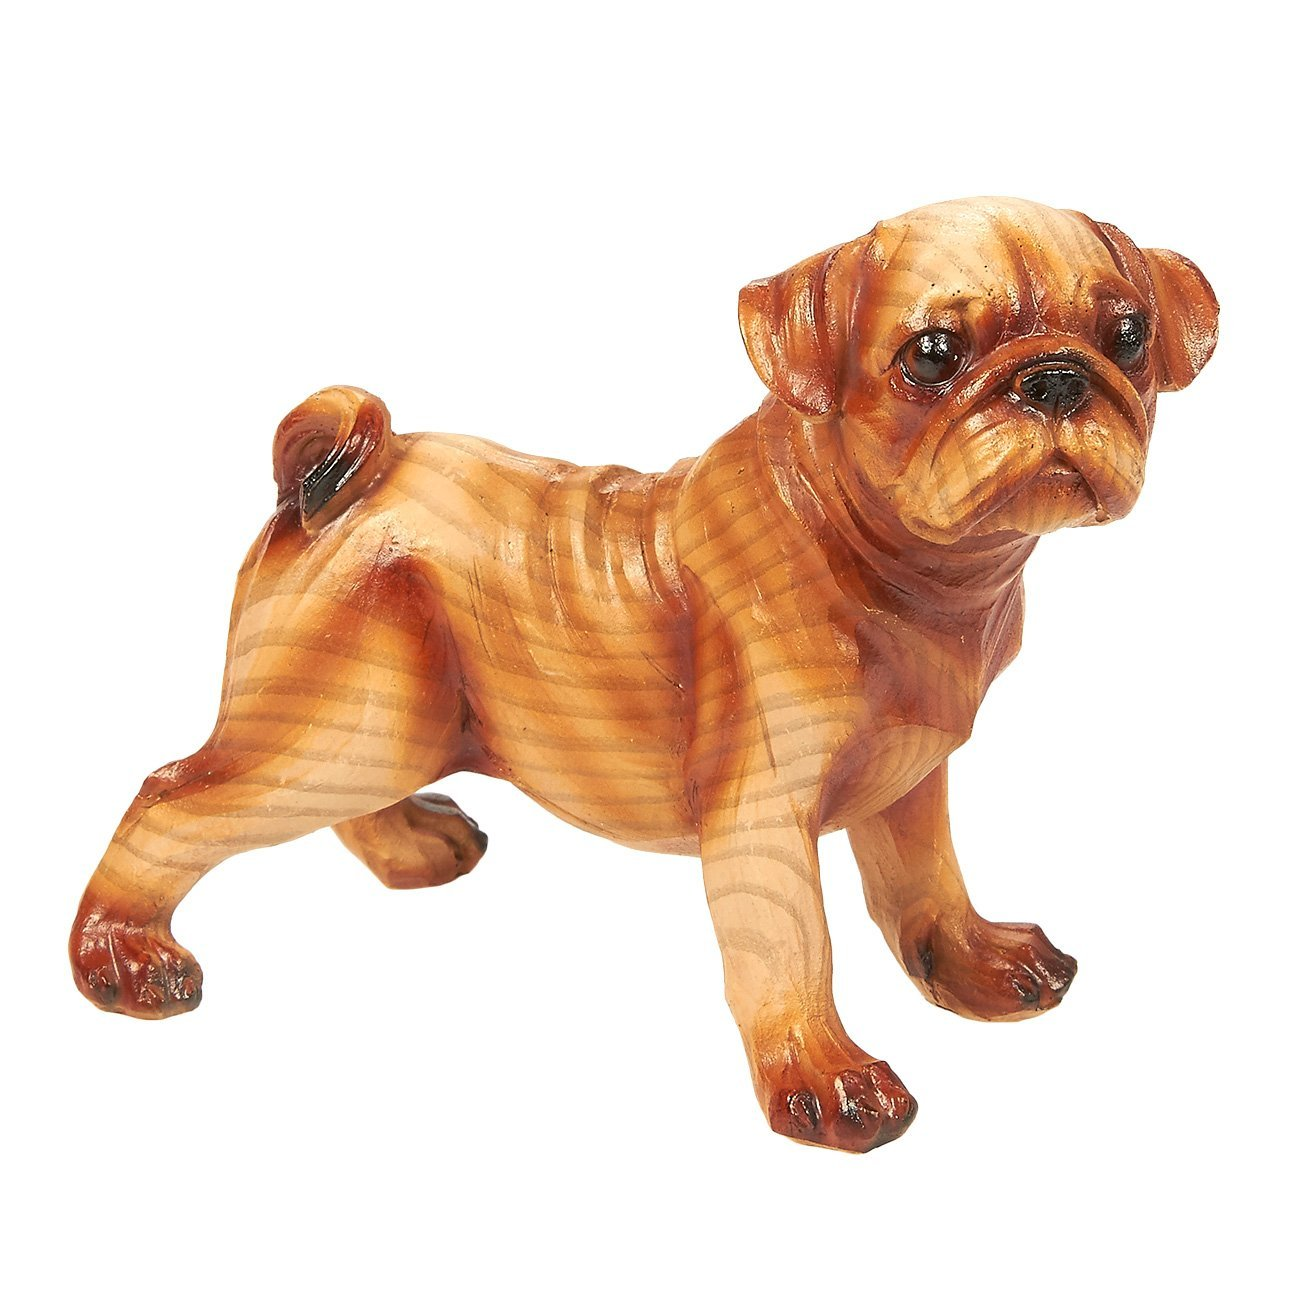 Juvale Pug Puppy Dog Resin Statue - Dog Sculpture, Pet Figurine, Collectible for Indoor, Mantelpiece, Desktop Decoration, Brown - 4.5 x 3.7 x 2.3 inches